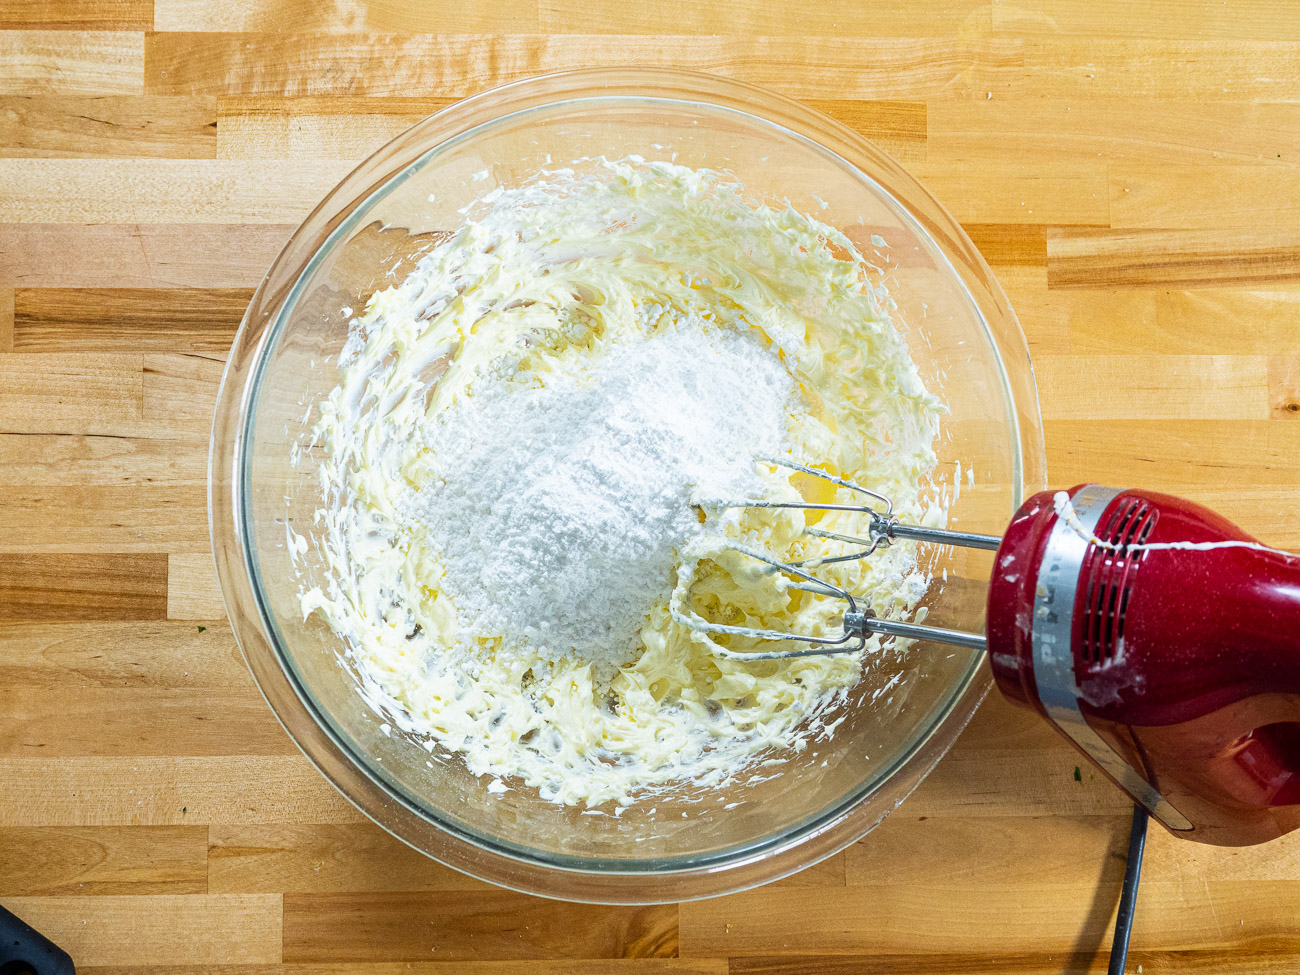 Using a hand mixer, beat butter and cream cheese until smooth and combined. Then, beat in powdered sugar, one cup at a time, then add vanilla and lemon zest.